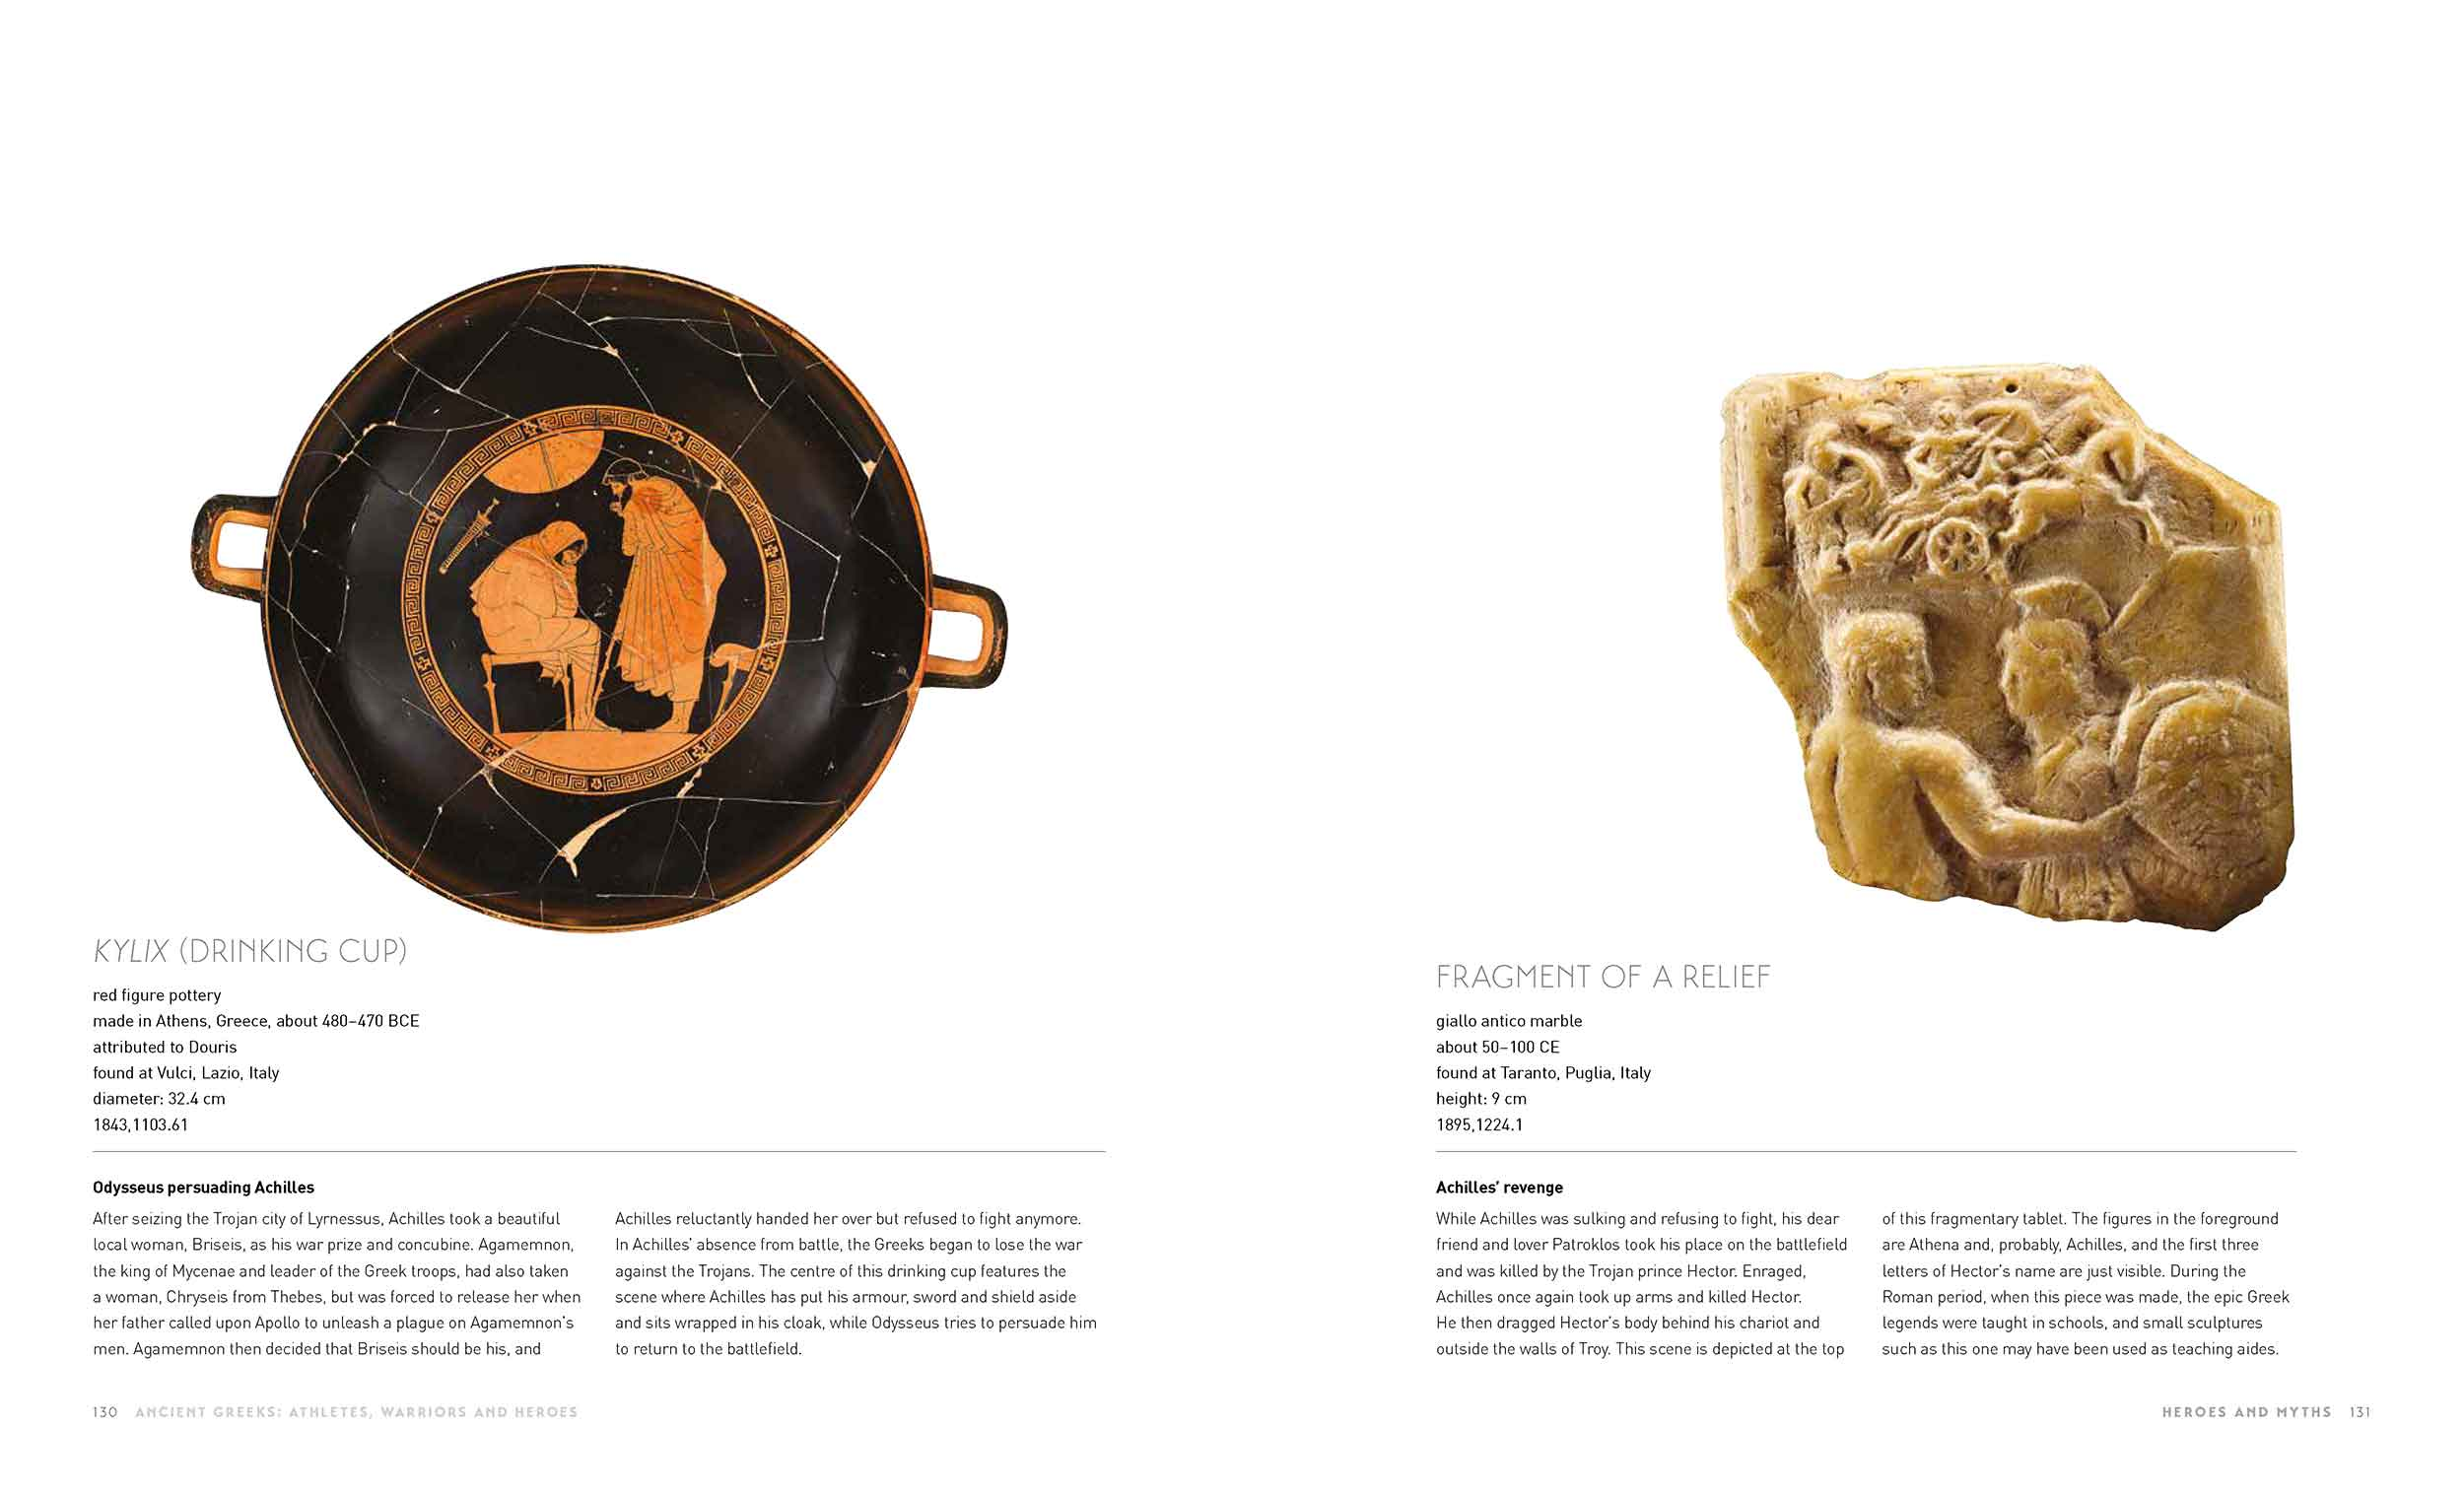 Sample page of a catalogue featuring a decorated vessel,  marble fragment and text. - click to view larger image